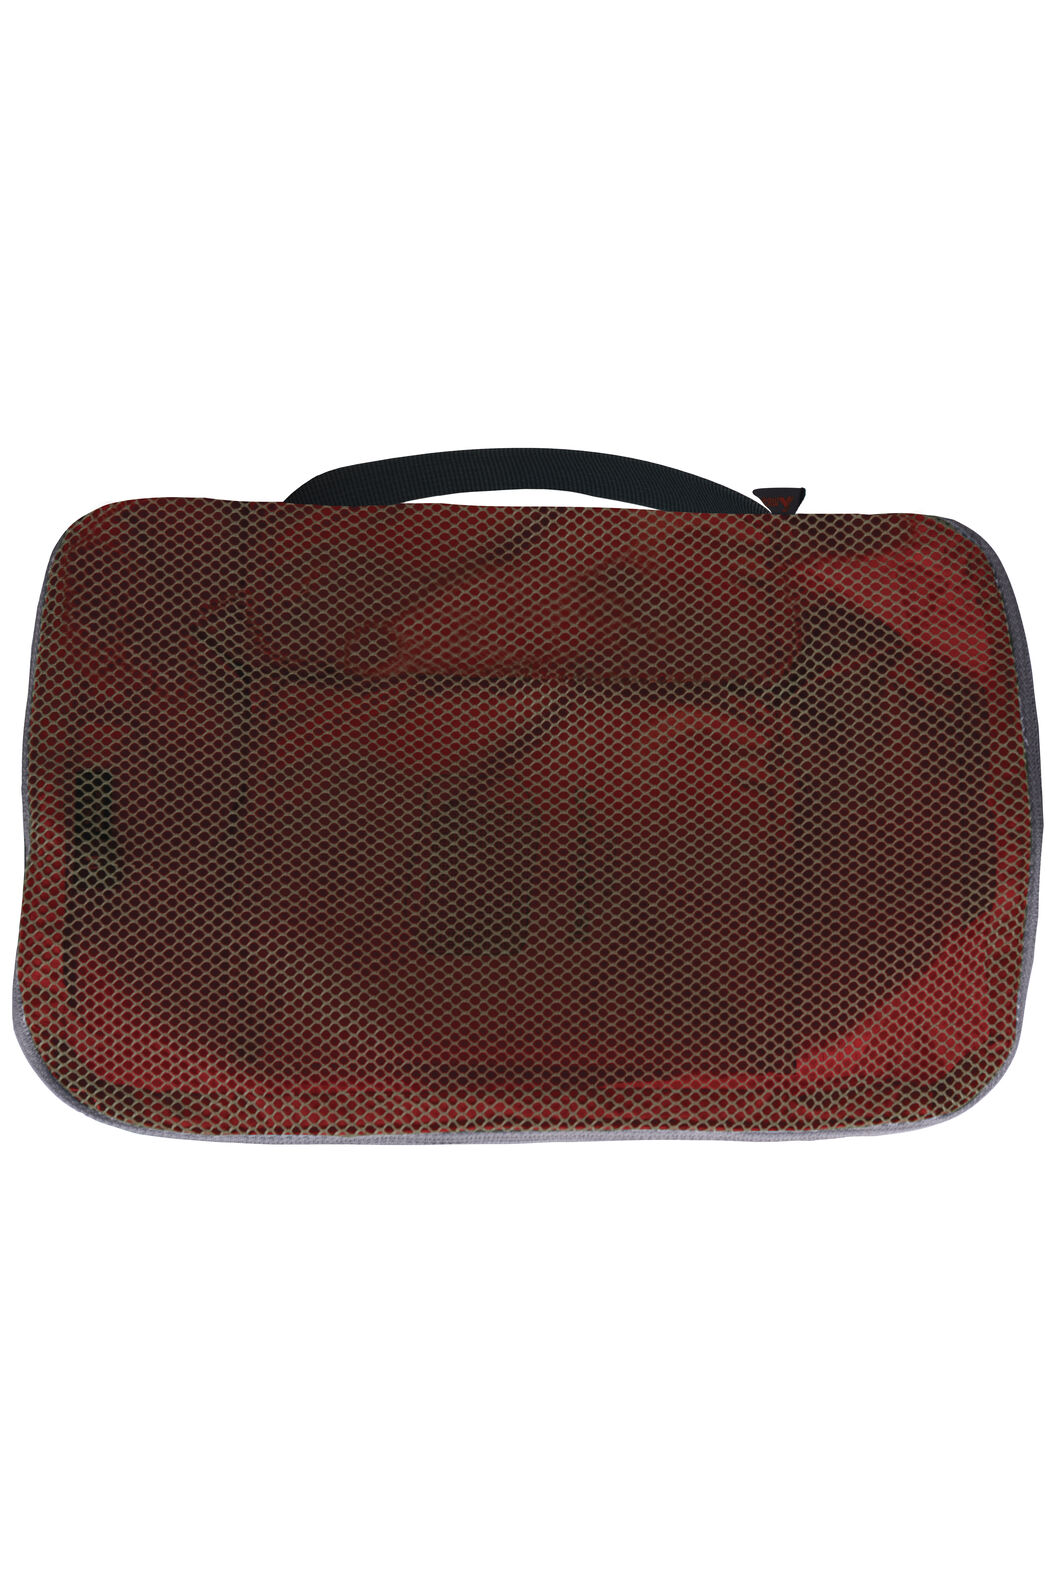 Macpac Medium Packing Cell, Jester Red, hi-res